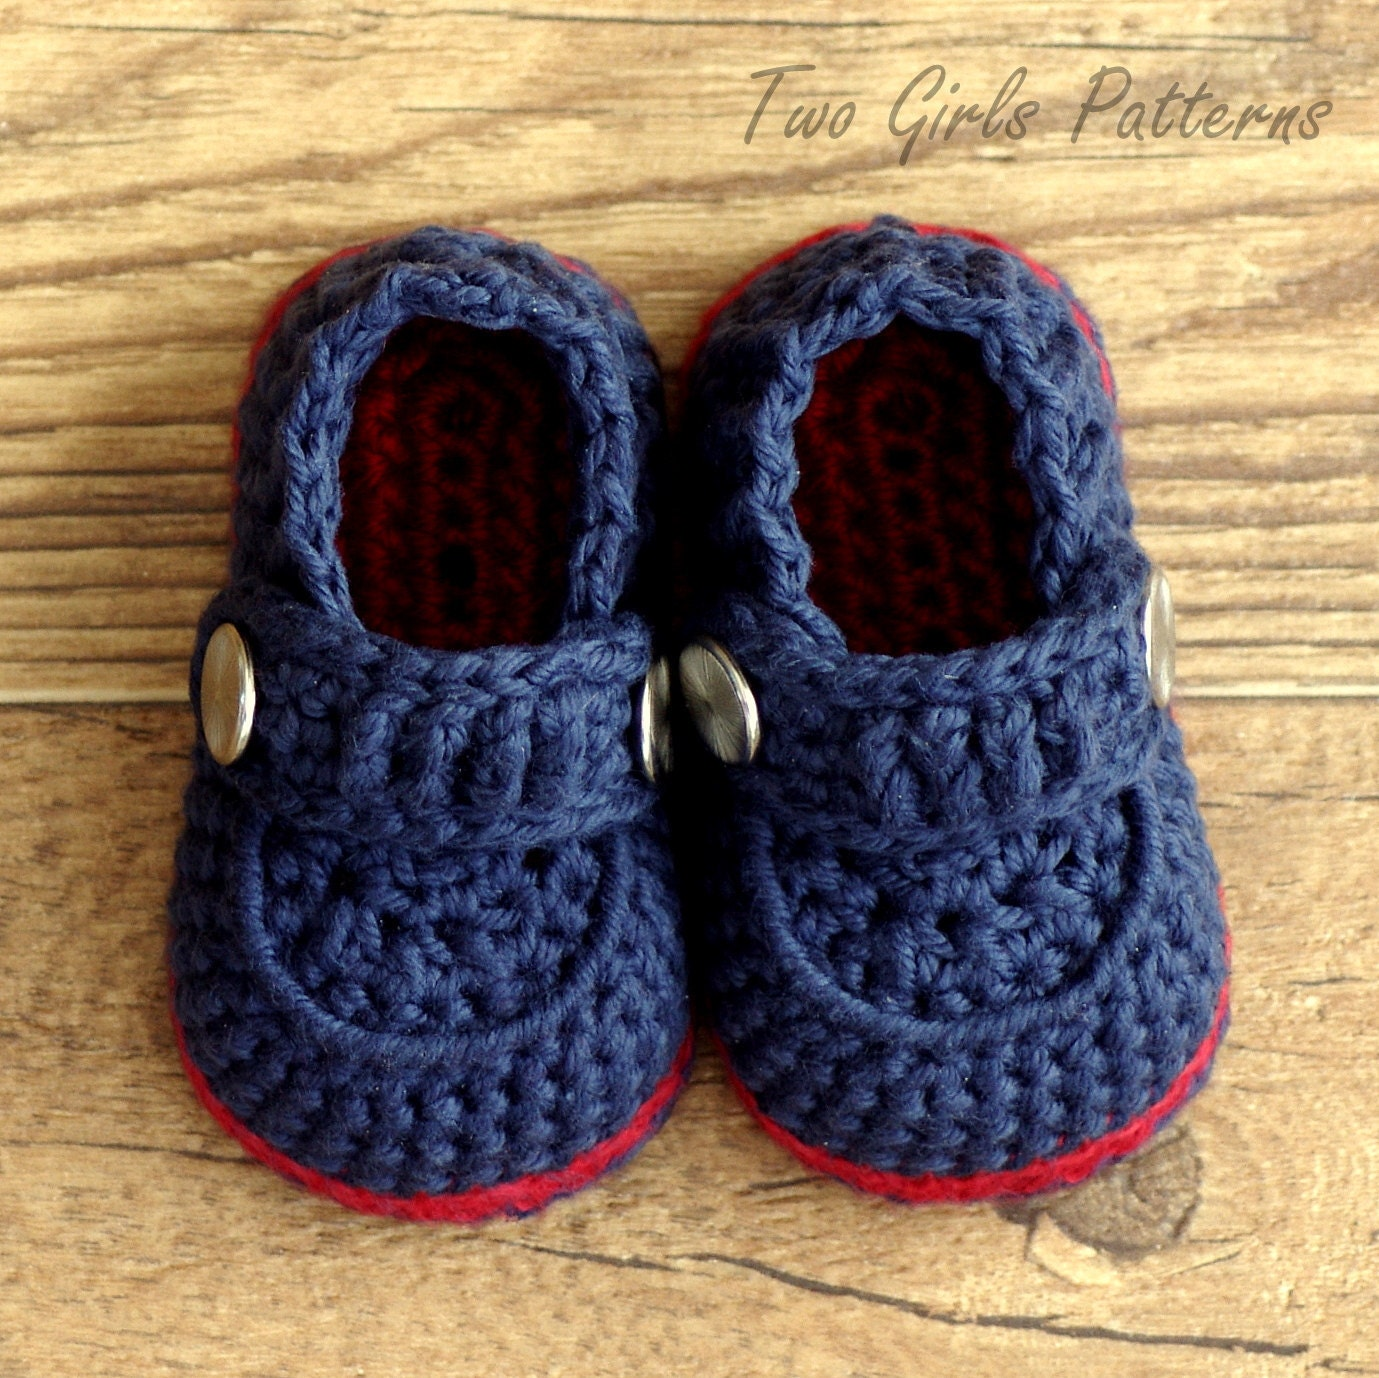 Easy Crochet Baby Boy Hat Patterns : Crochet patterns Baby Boy Boot The Sailor by TwoGirlsPatterns